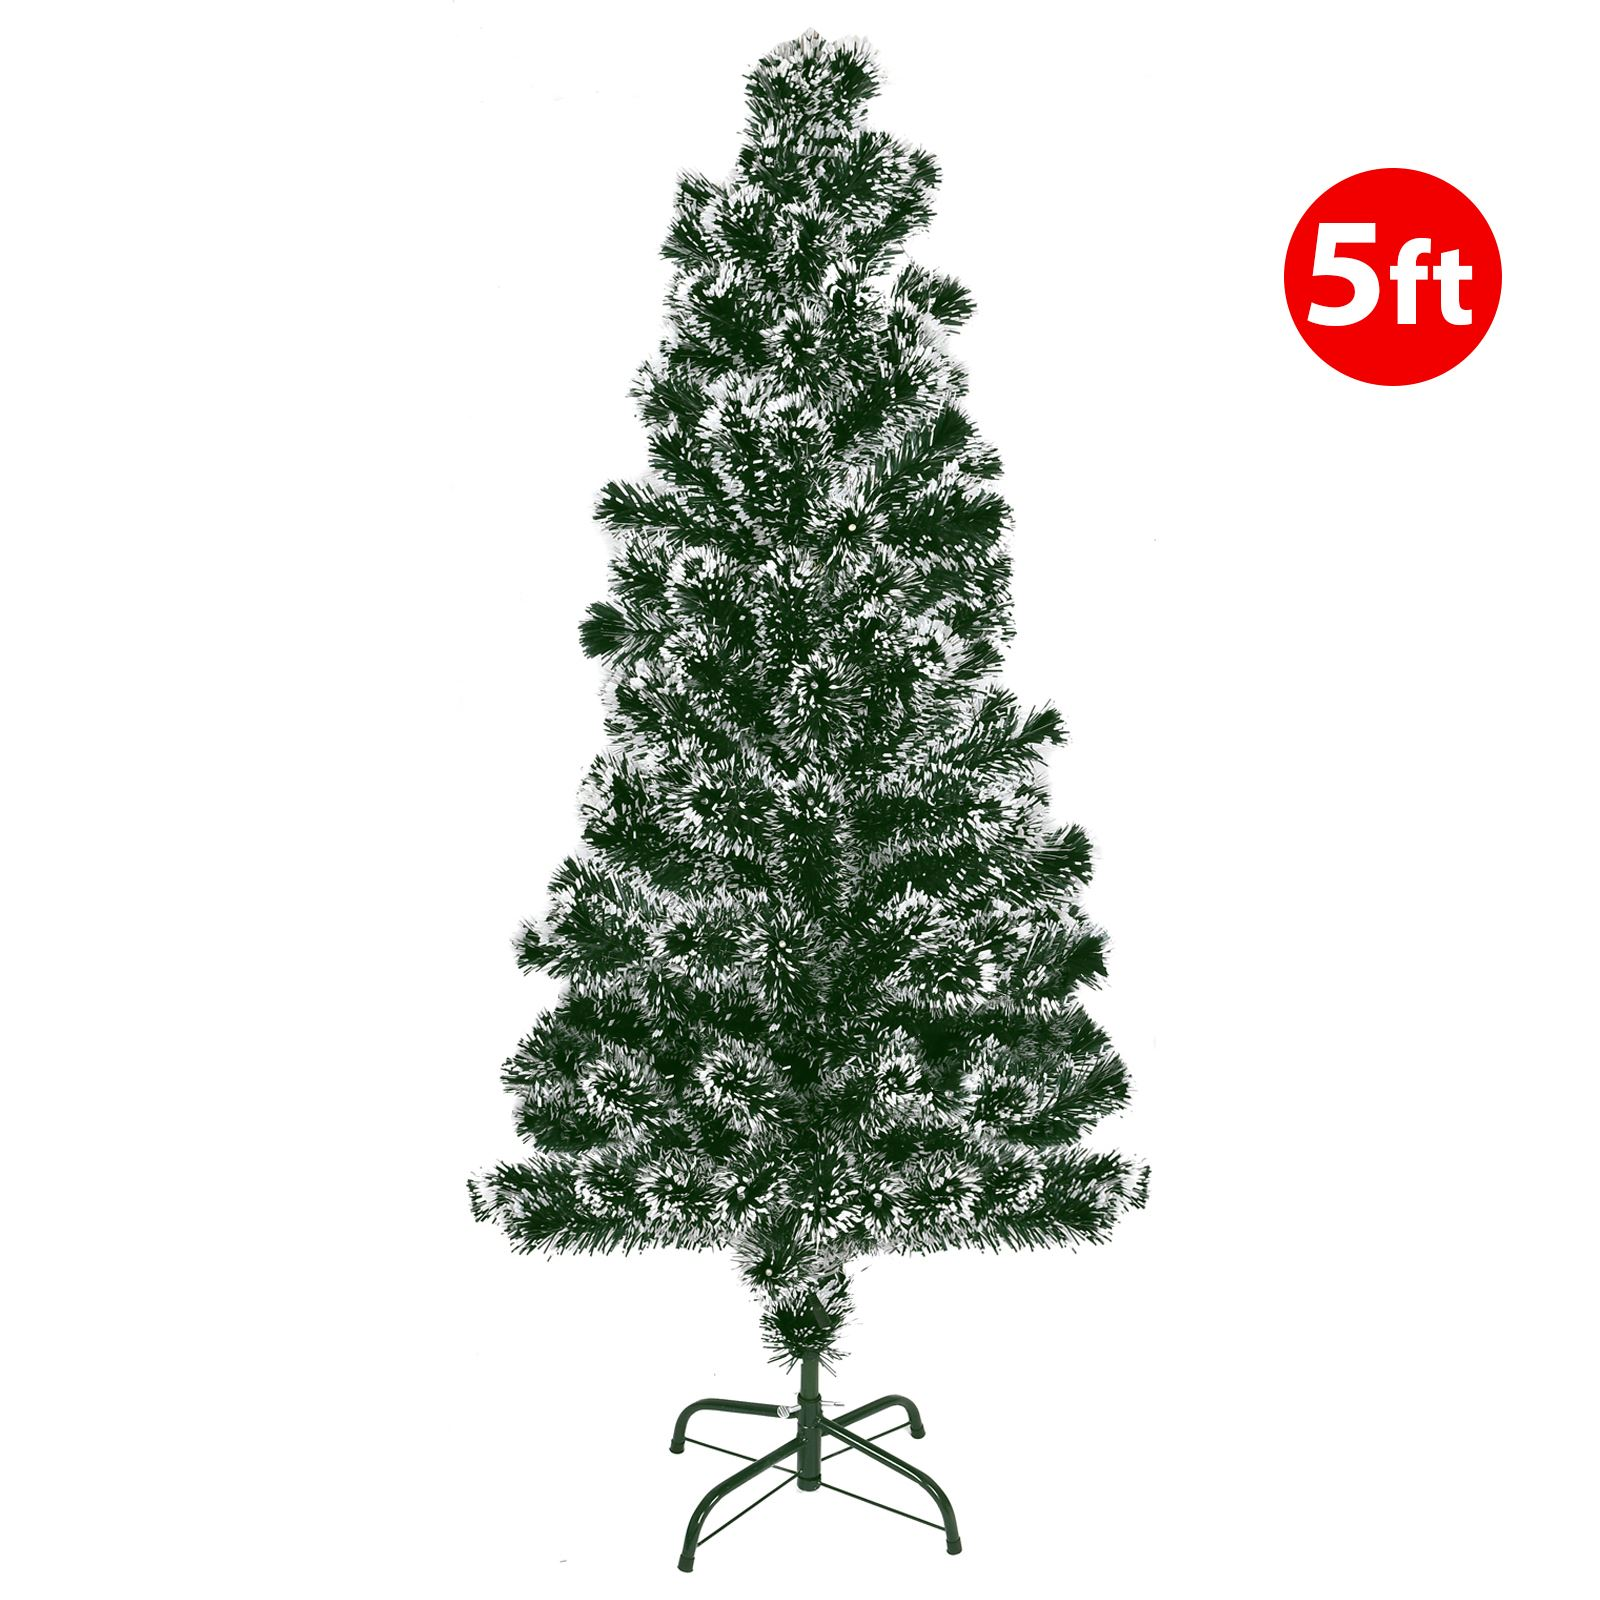 Realistic-Green-Christmas-Trees-2-4-5-6-7ft-Xmas-Festive-Decoration-Snow-Tipped